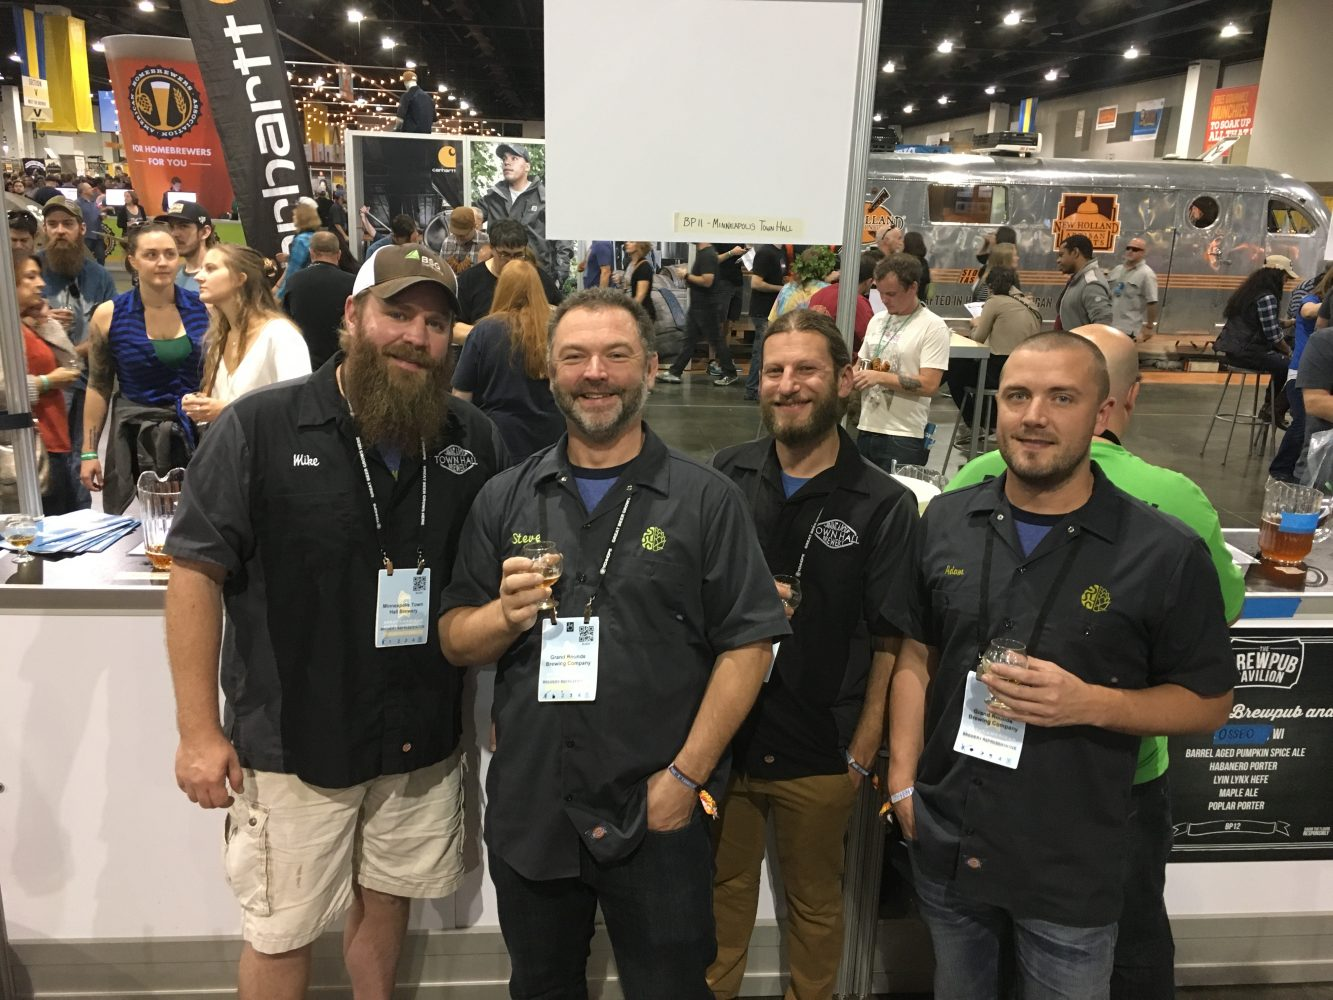 GABF - Grand Round Brewing Co